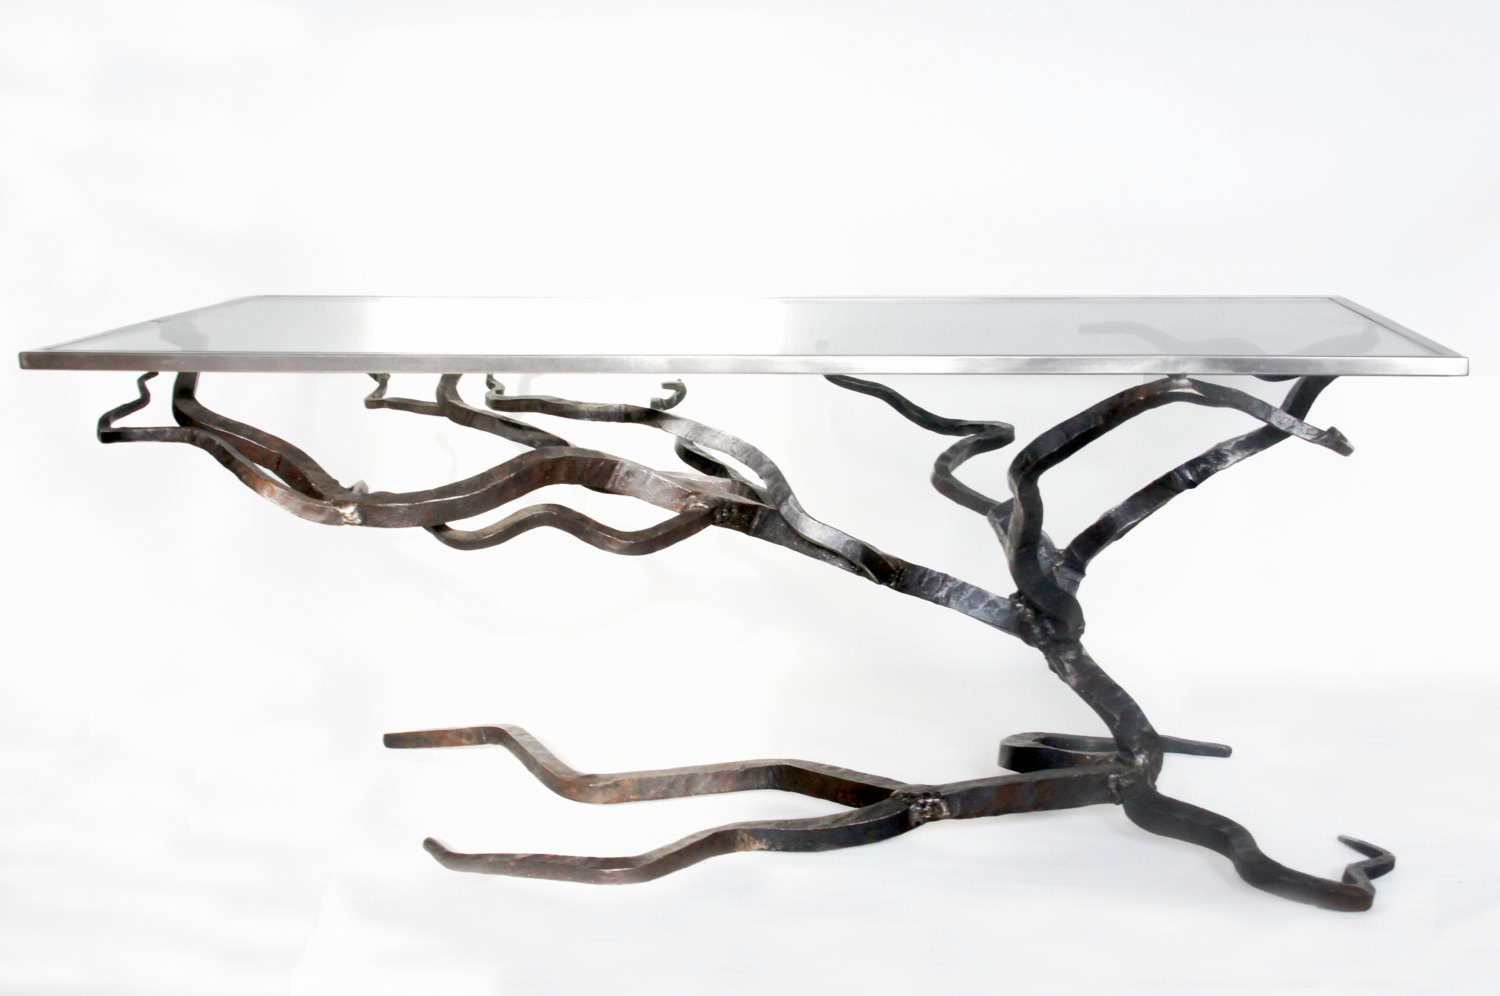 Modern Coffee Tables Tablesand Nemesis Family Modern Design Sofa Table Contemporary Glass (Image 10 of 10)